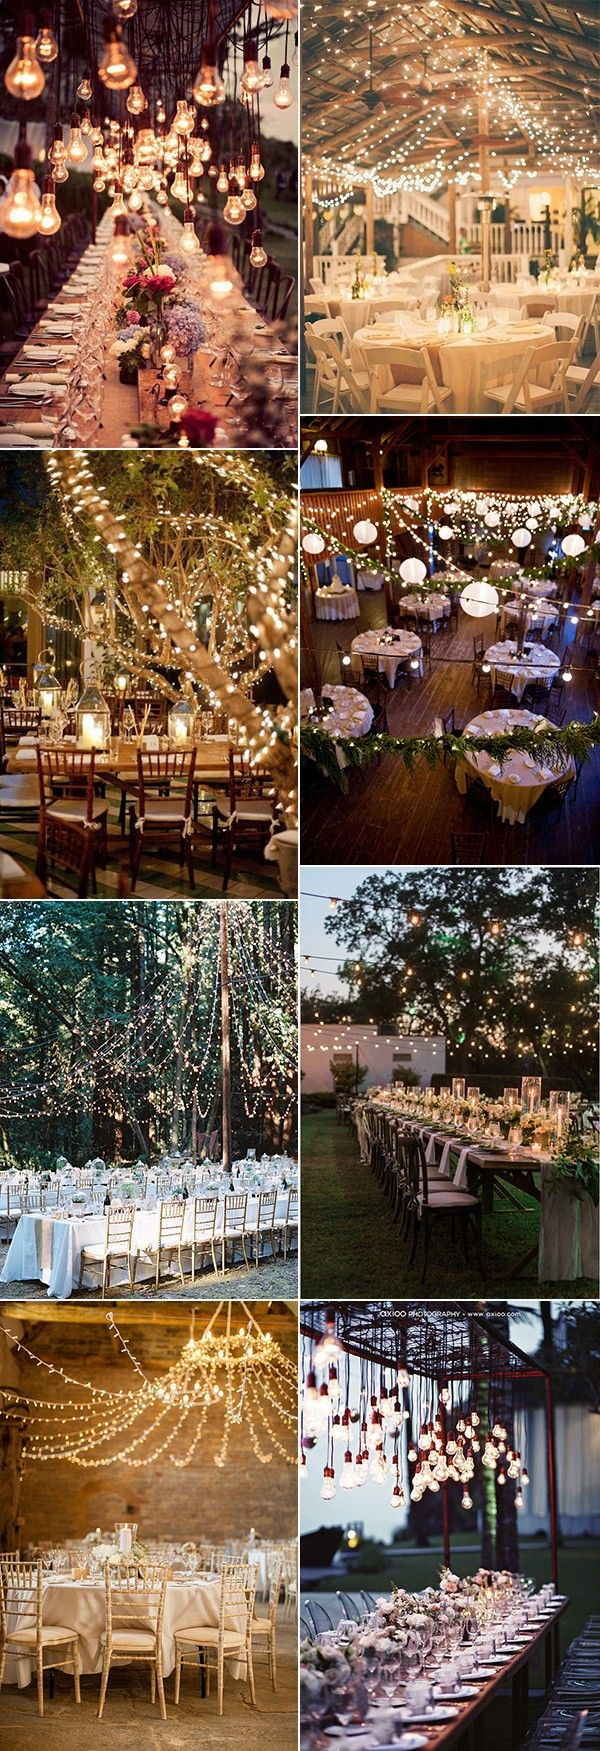 Wedding decorations tulle and lights october 2018  best Wedding images on Pinterest  Wedding ideas Short wedding